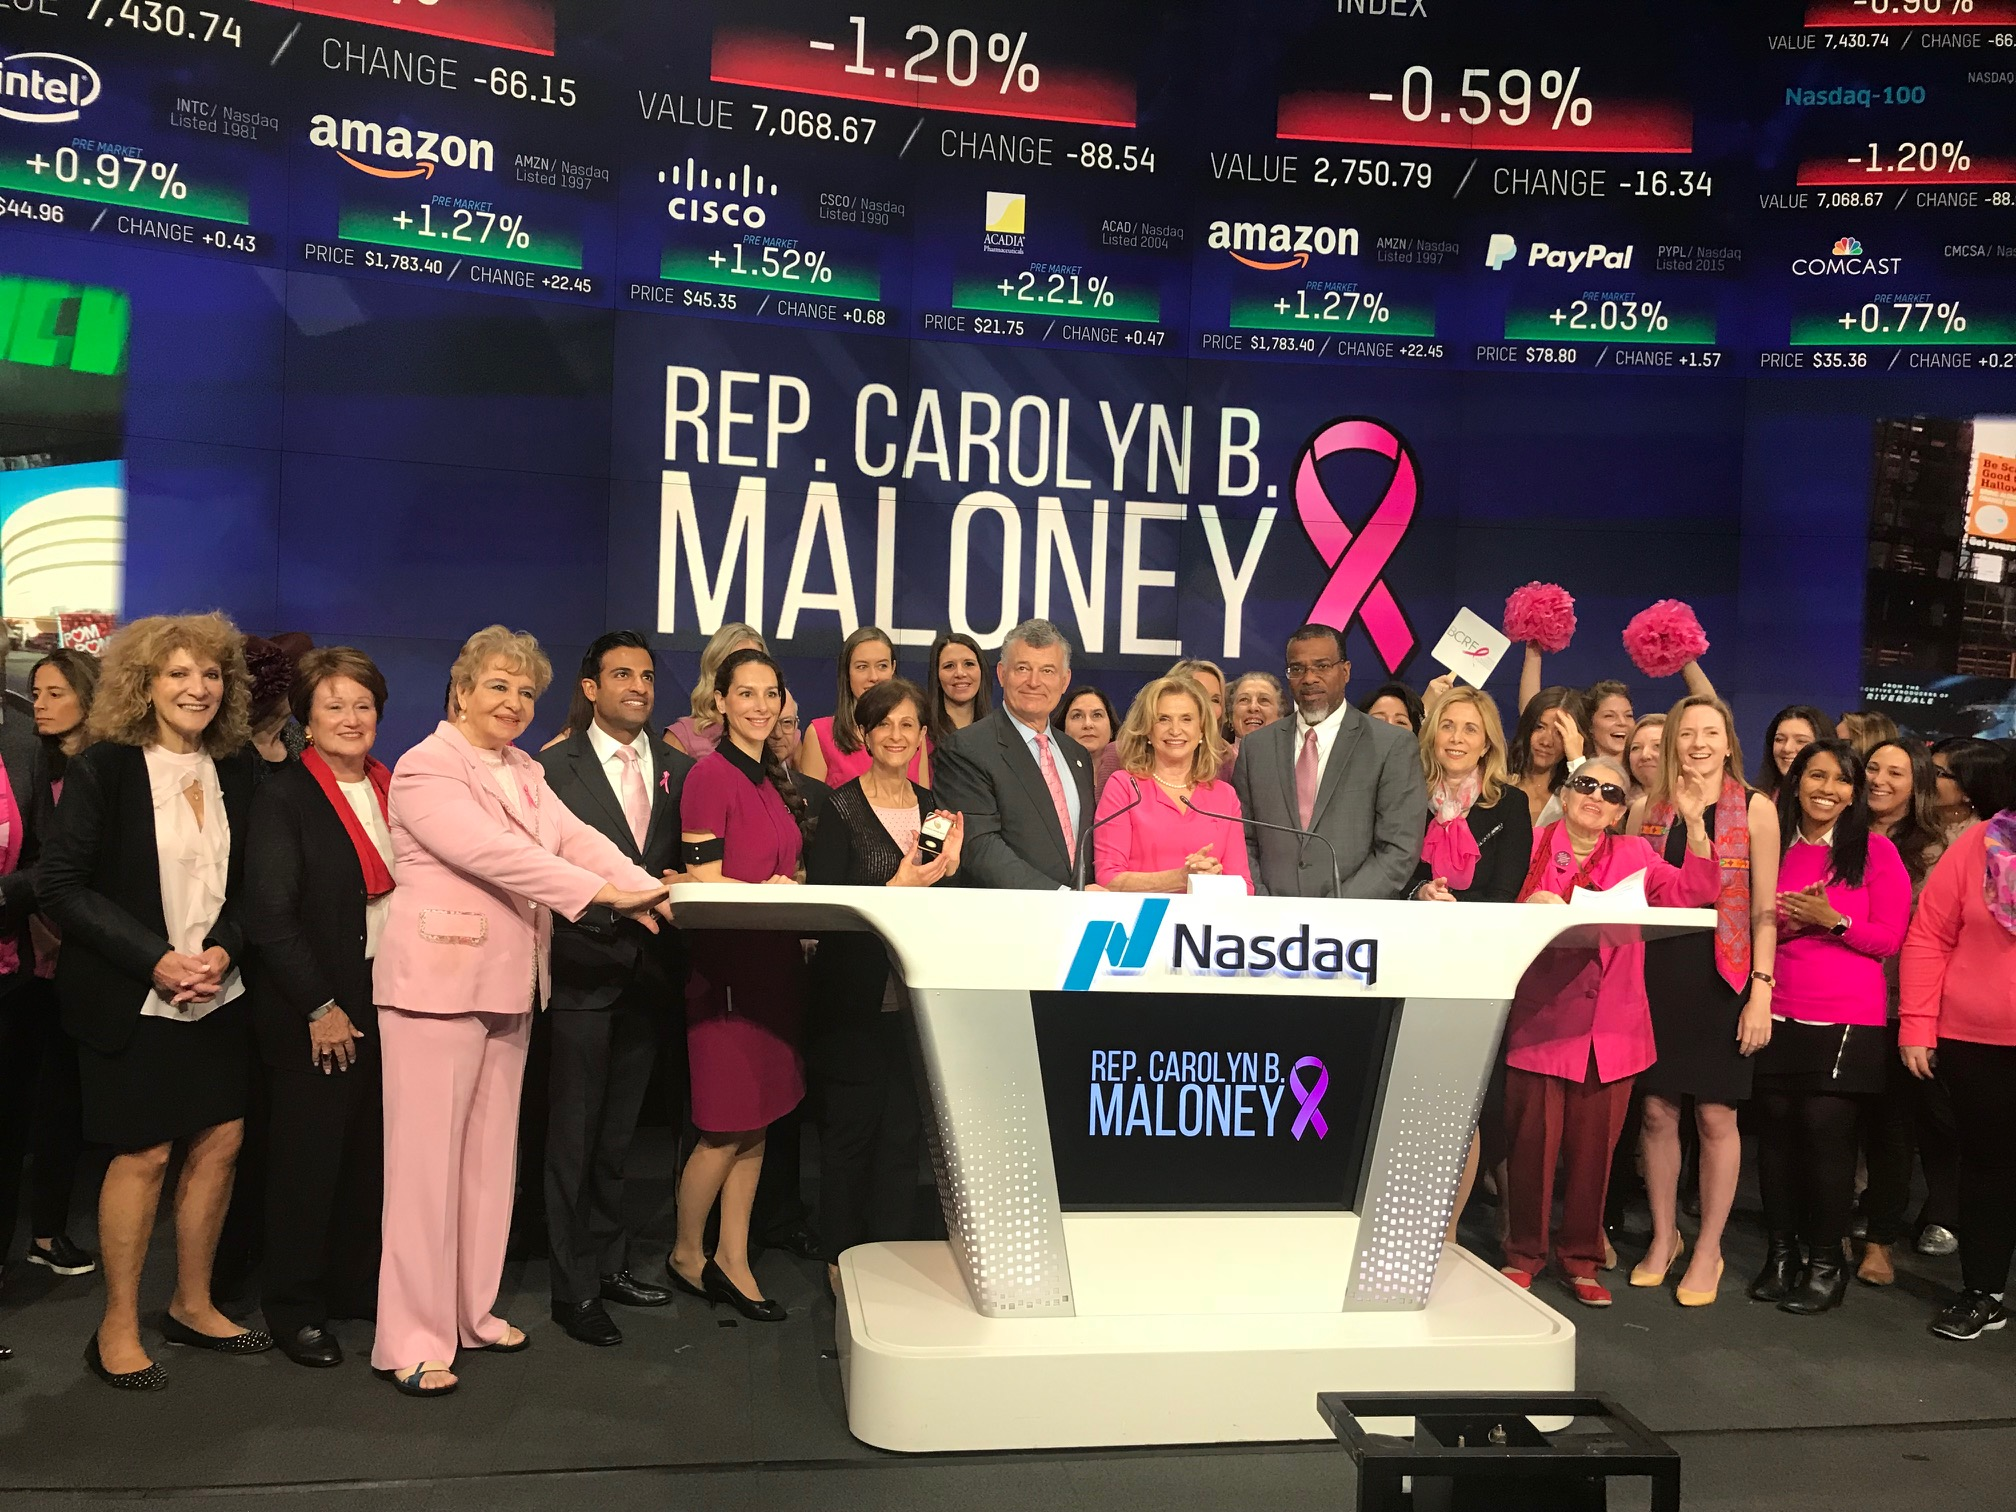 Caption: Carolyn B. Maloney rang the opening bell at NASDAQ to bring awareness to and help support breast cancer research.